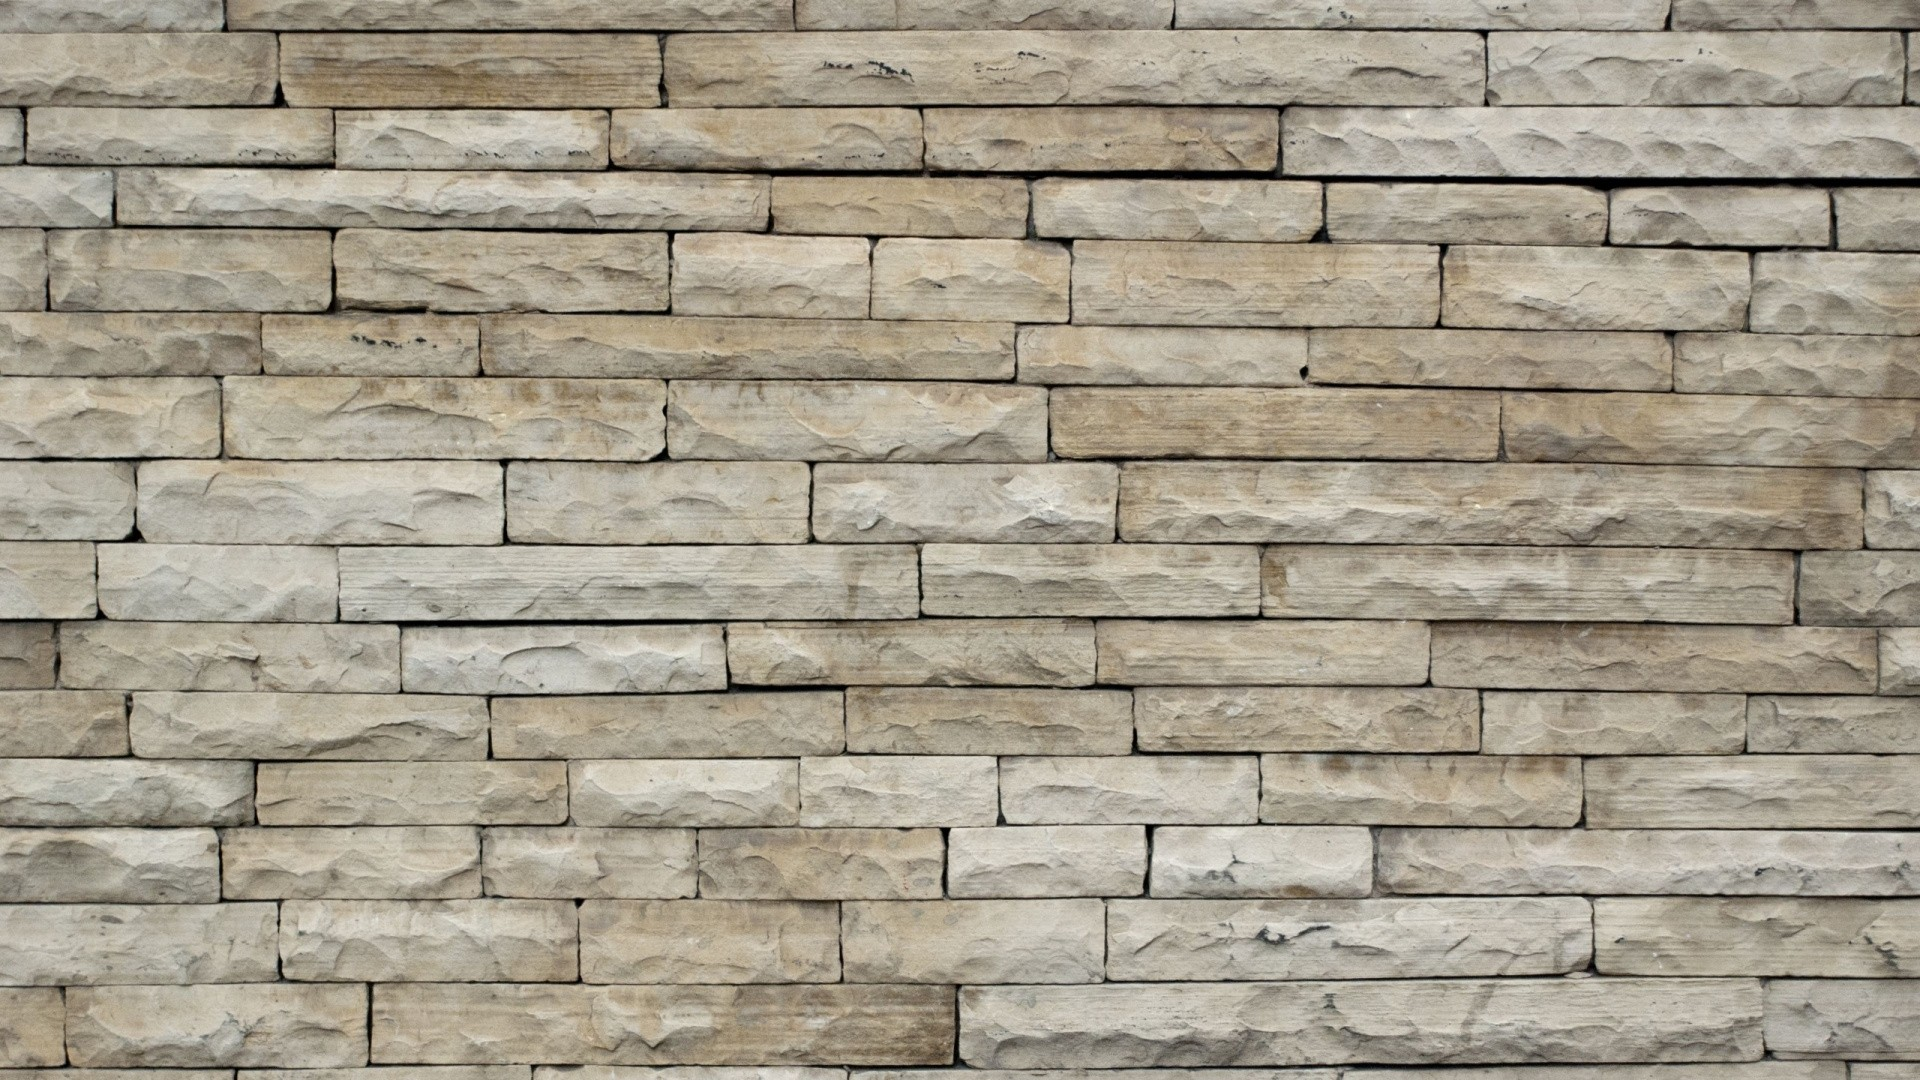 White Brick Wallpaper image hd